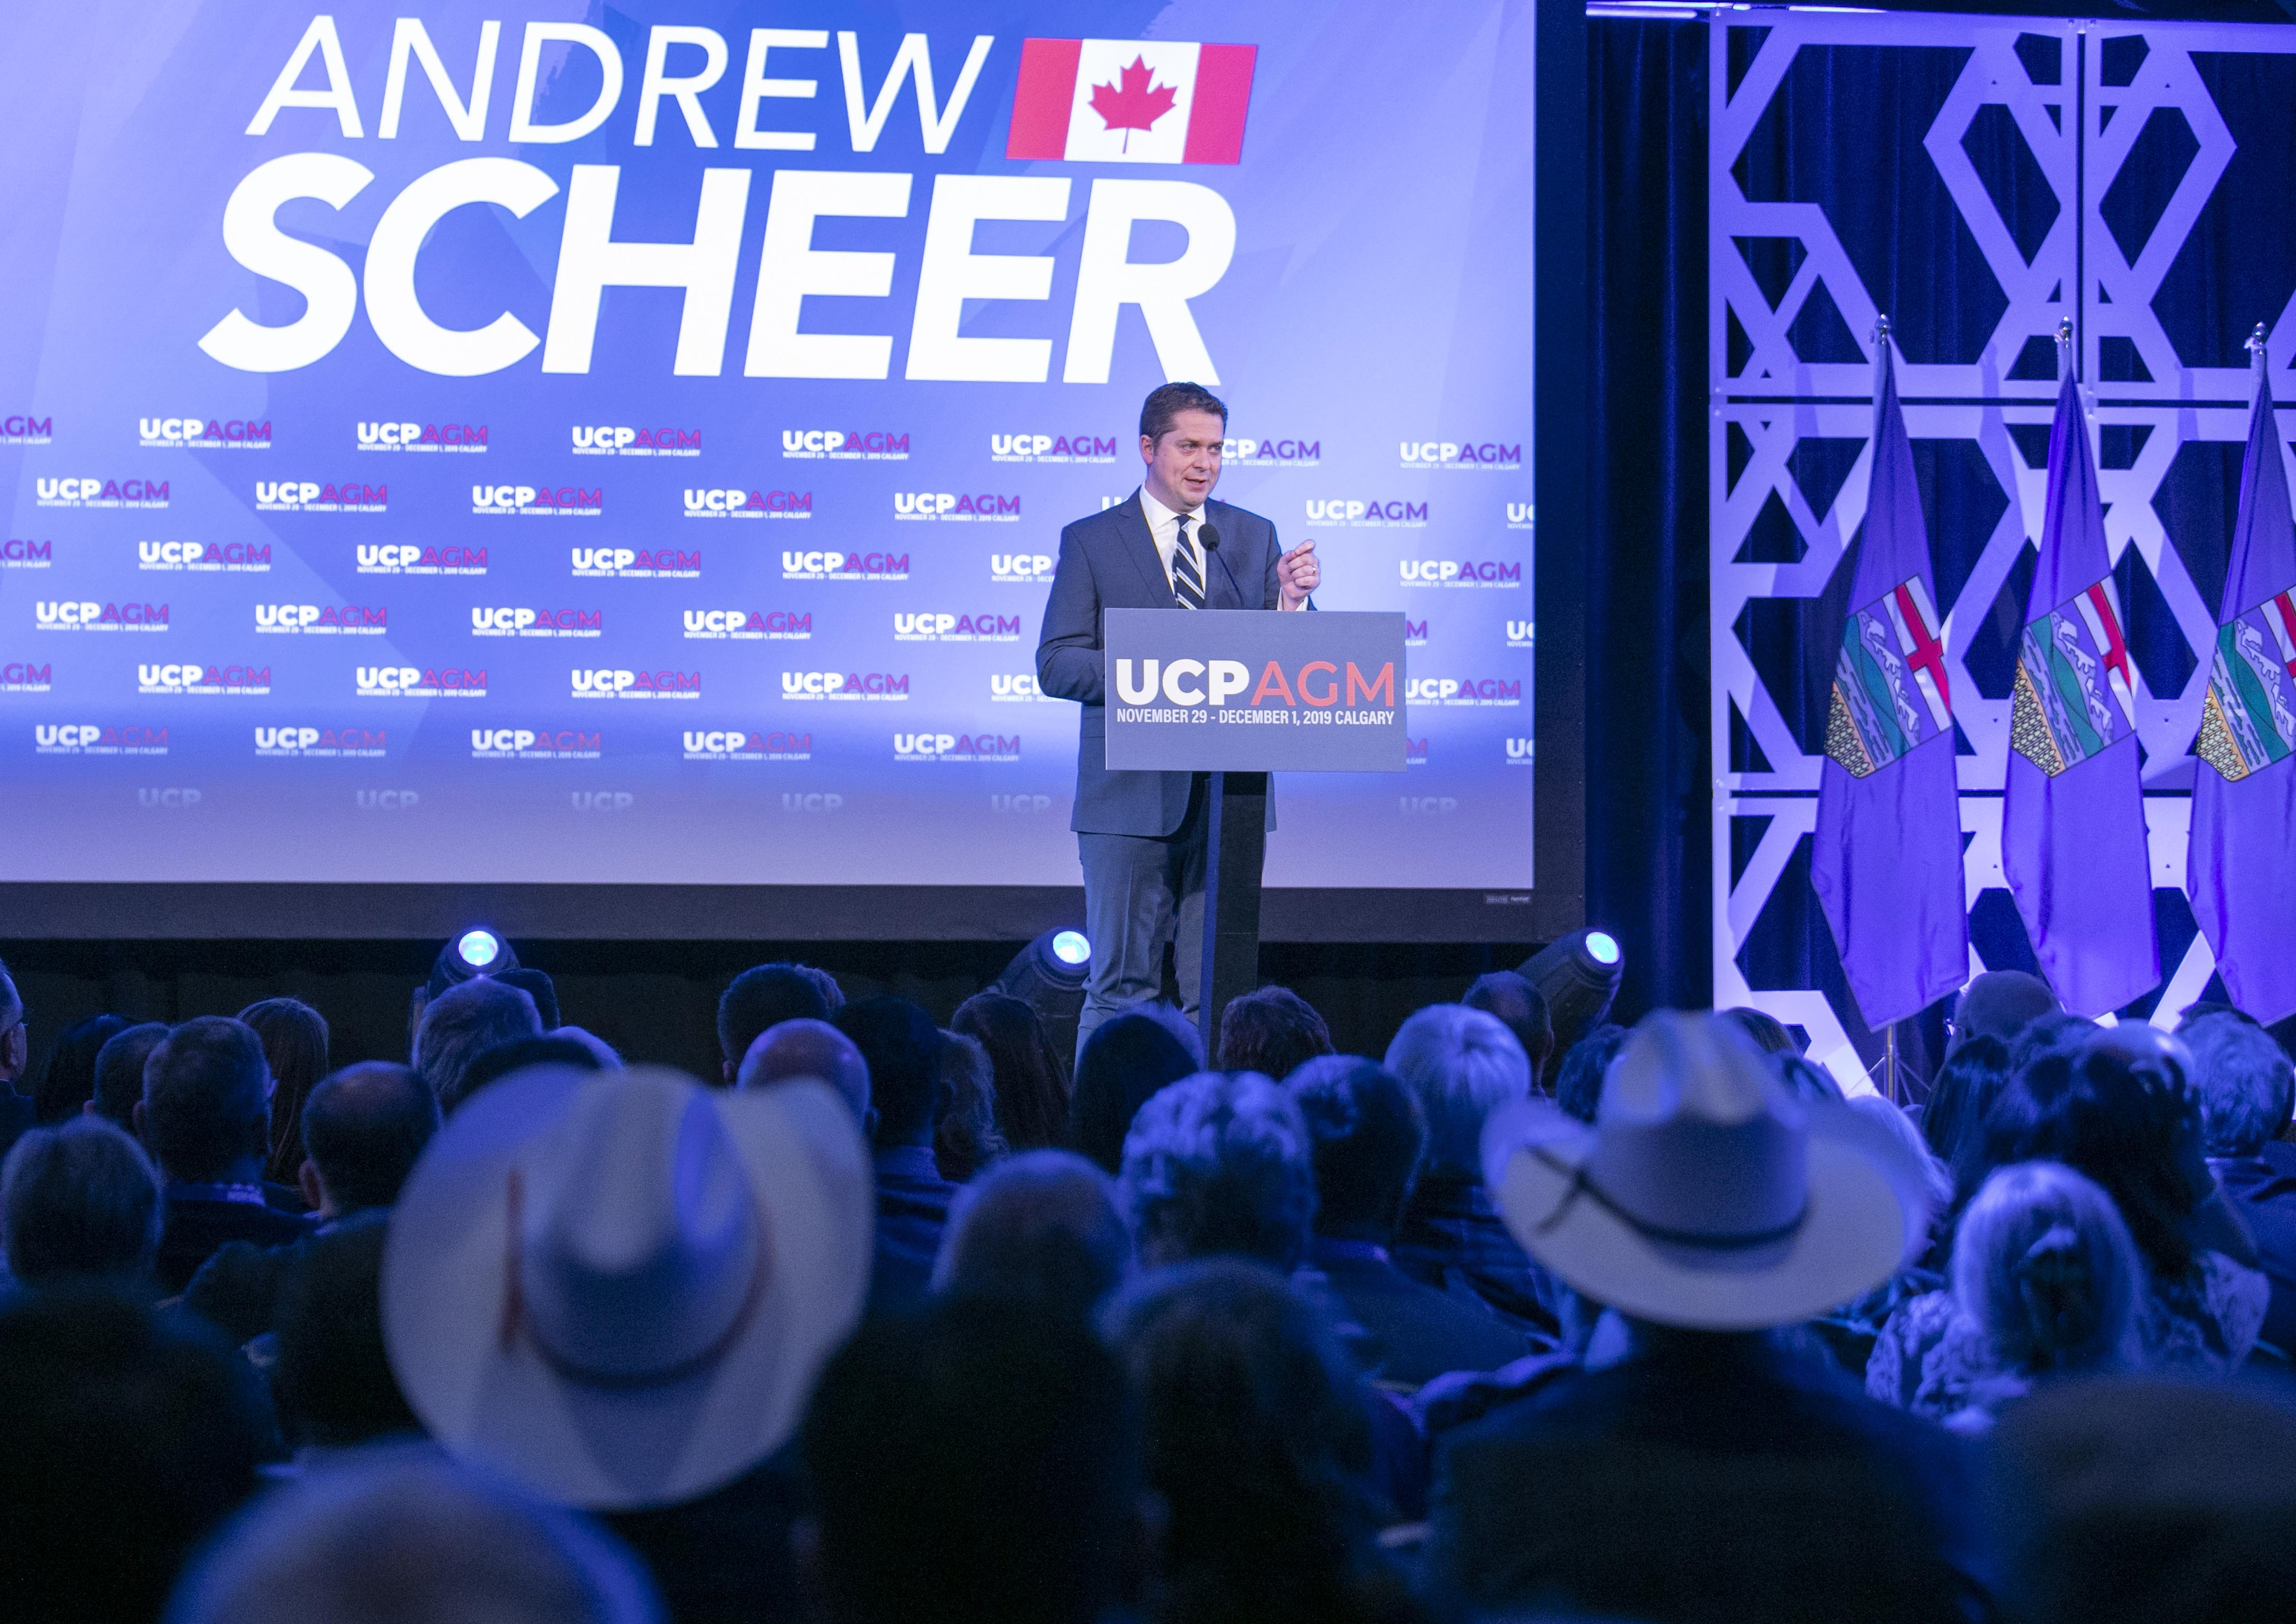 POLL: Fewer than 50% of self-described Conservative voters want Andrew Scheer as leader